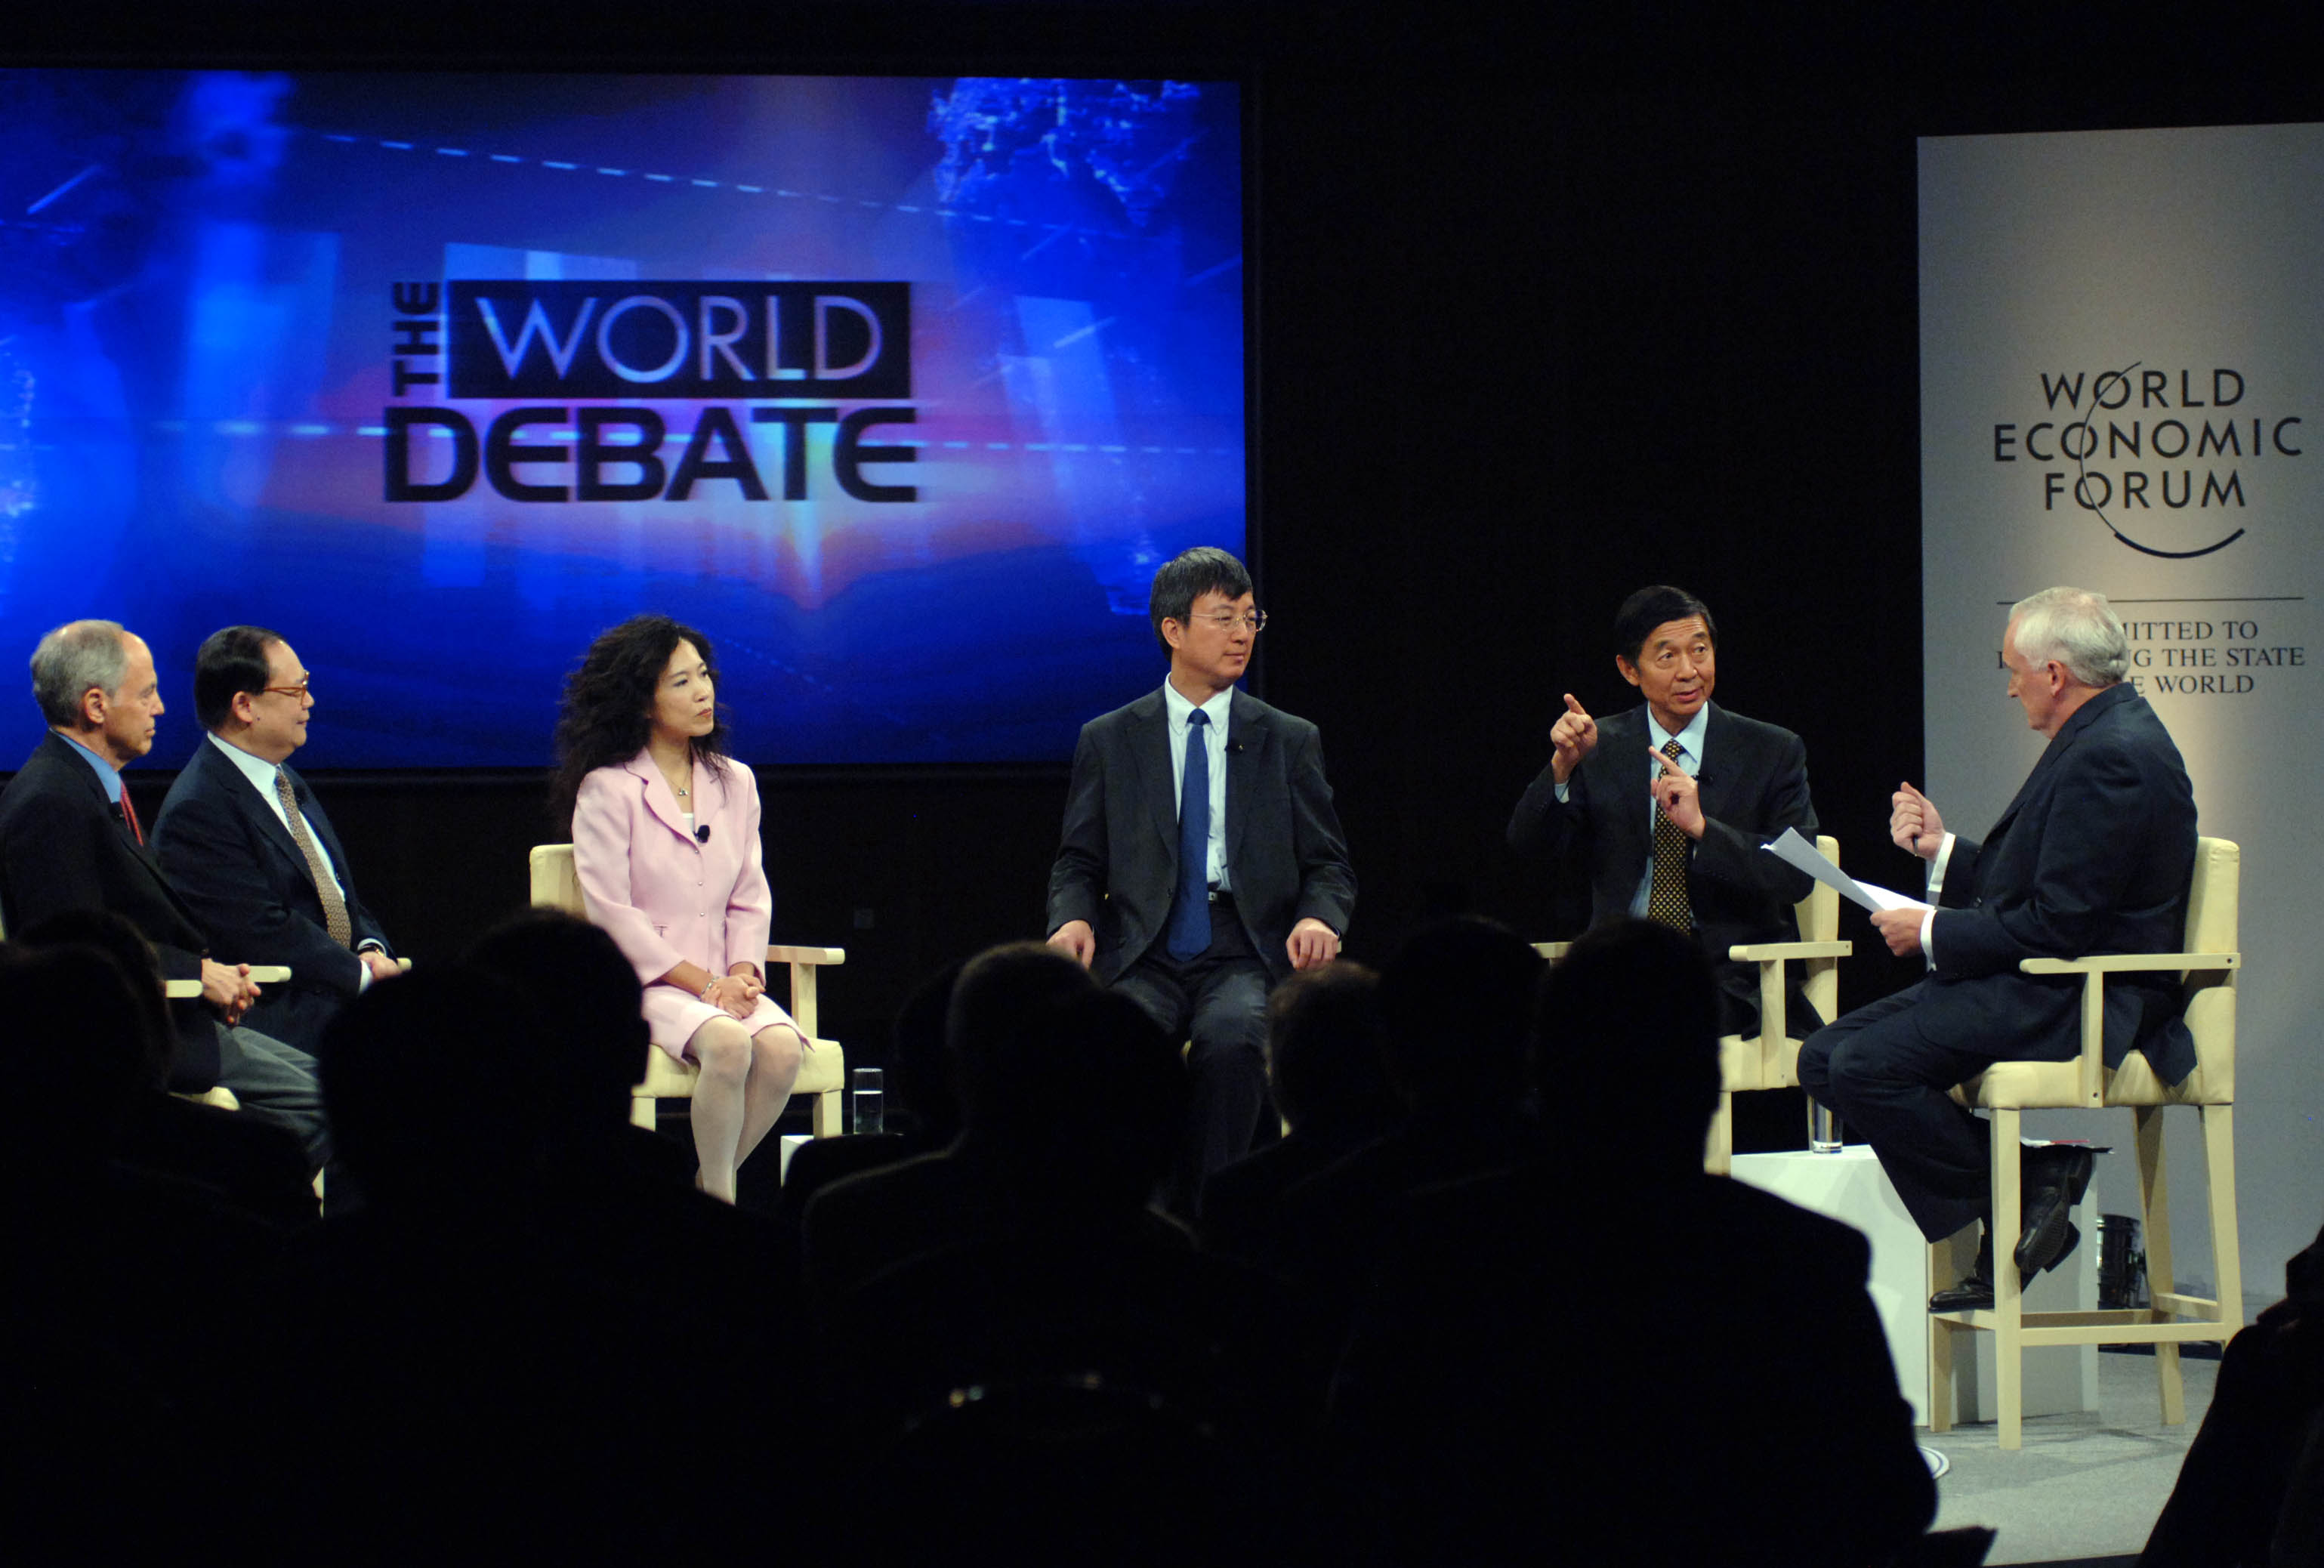 File:Flickr - World Economic Forum - BBC Debate - Annual ...